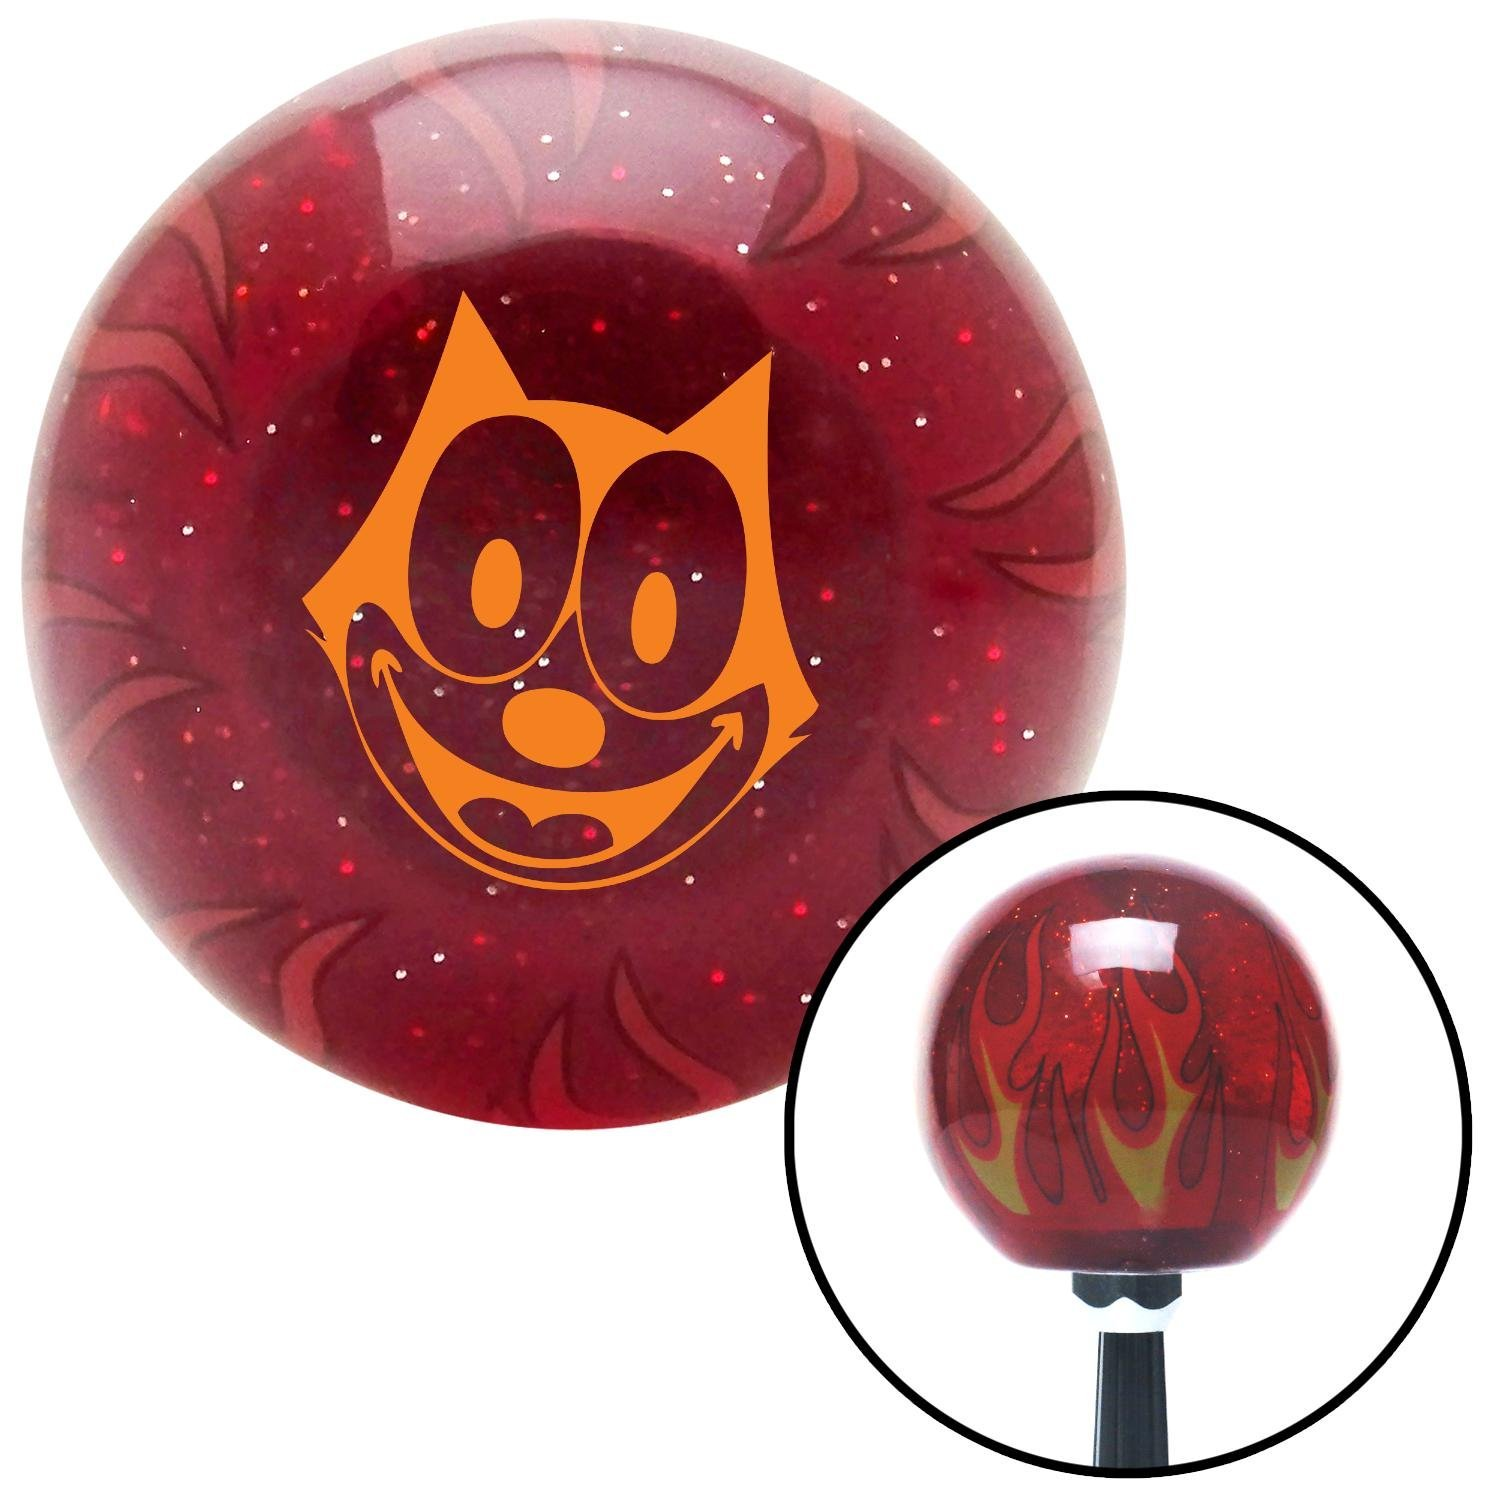 American Shifter 242340 Red Flame Metal Flake Shift Knob with M16 x 1.5 Insert Orange Felix The Cat Smiling